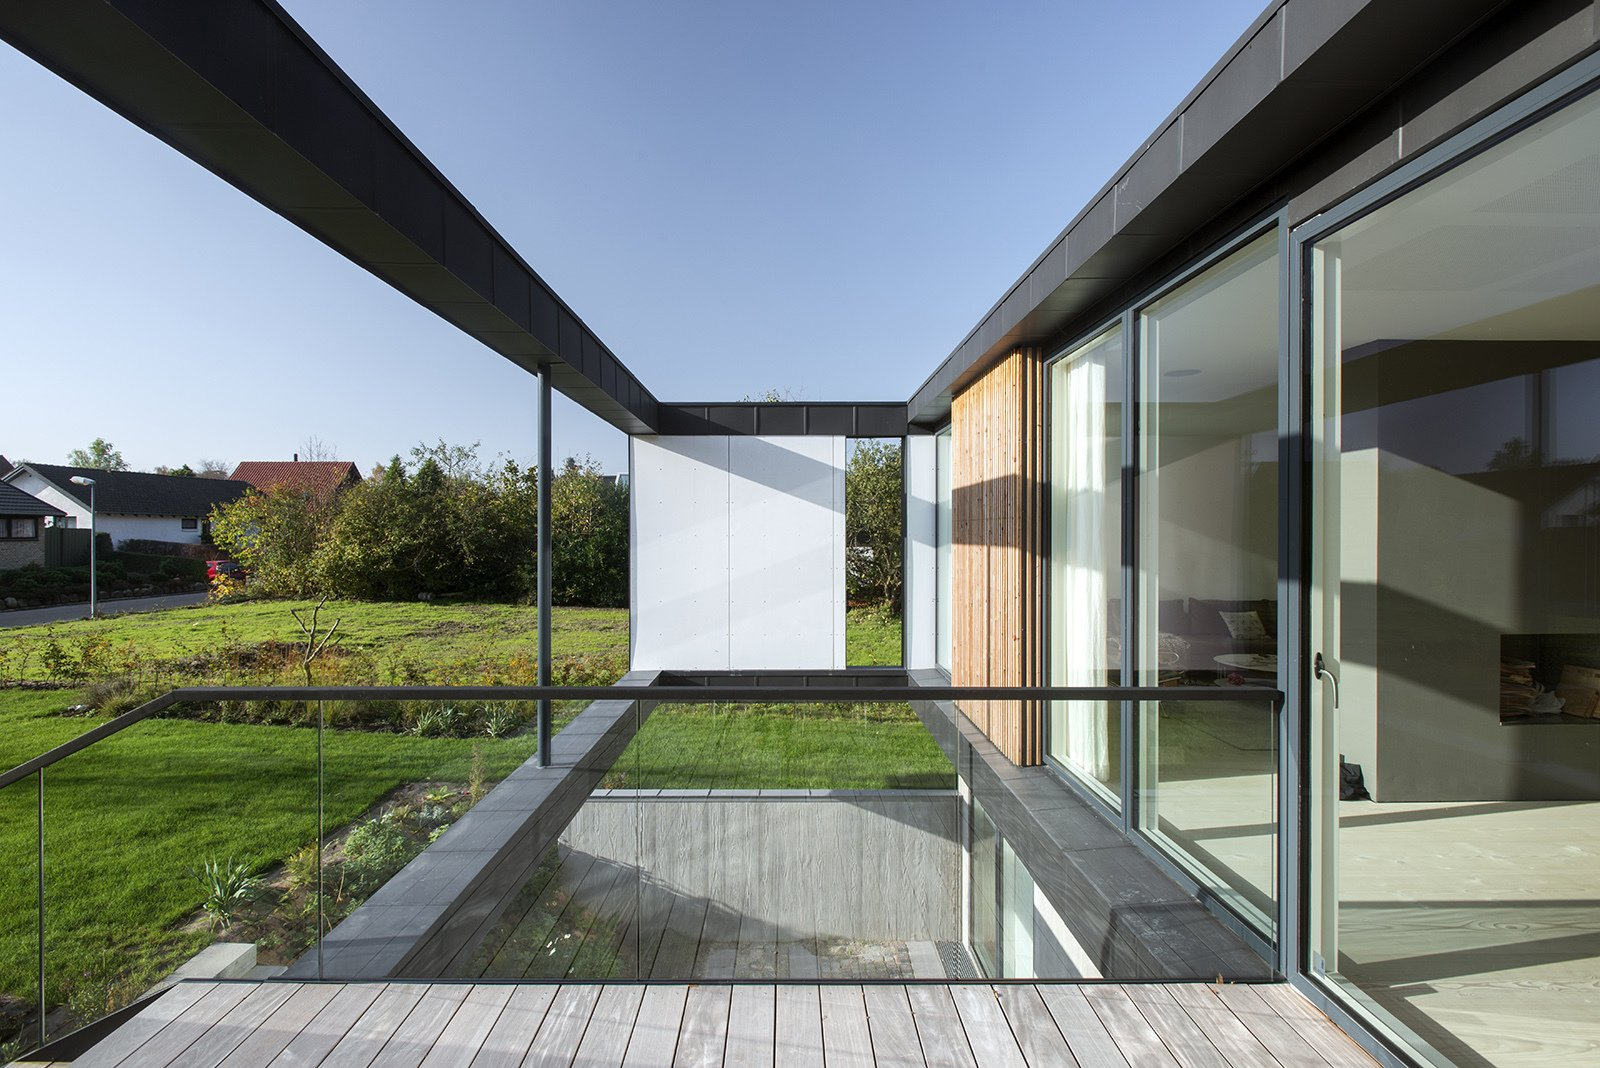 Floor-to-ceiling glass walls allow natural daylight to enter the home.  Villa R by Diana Budds